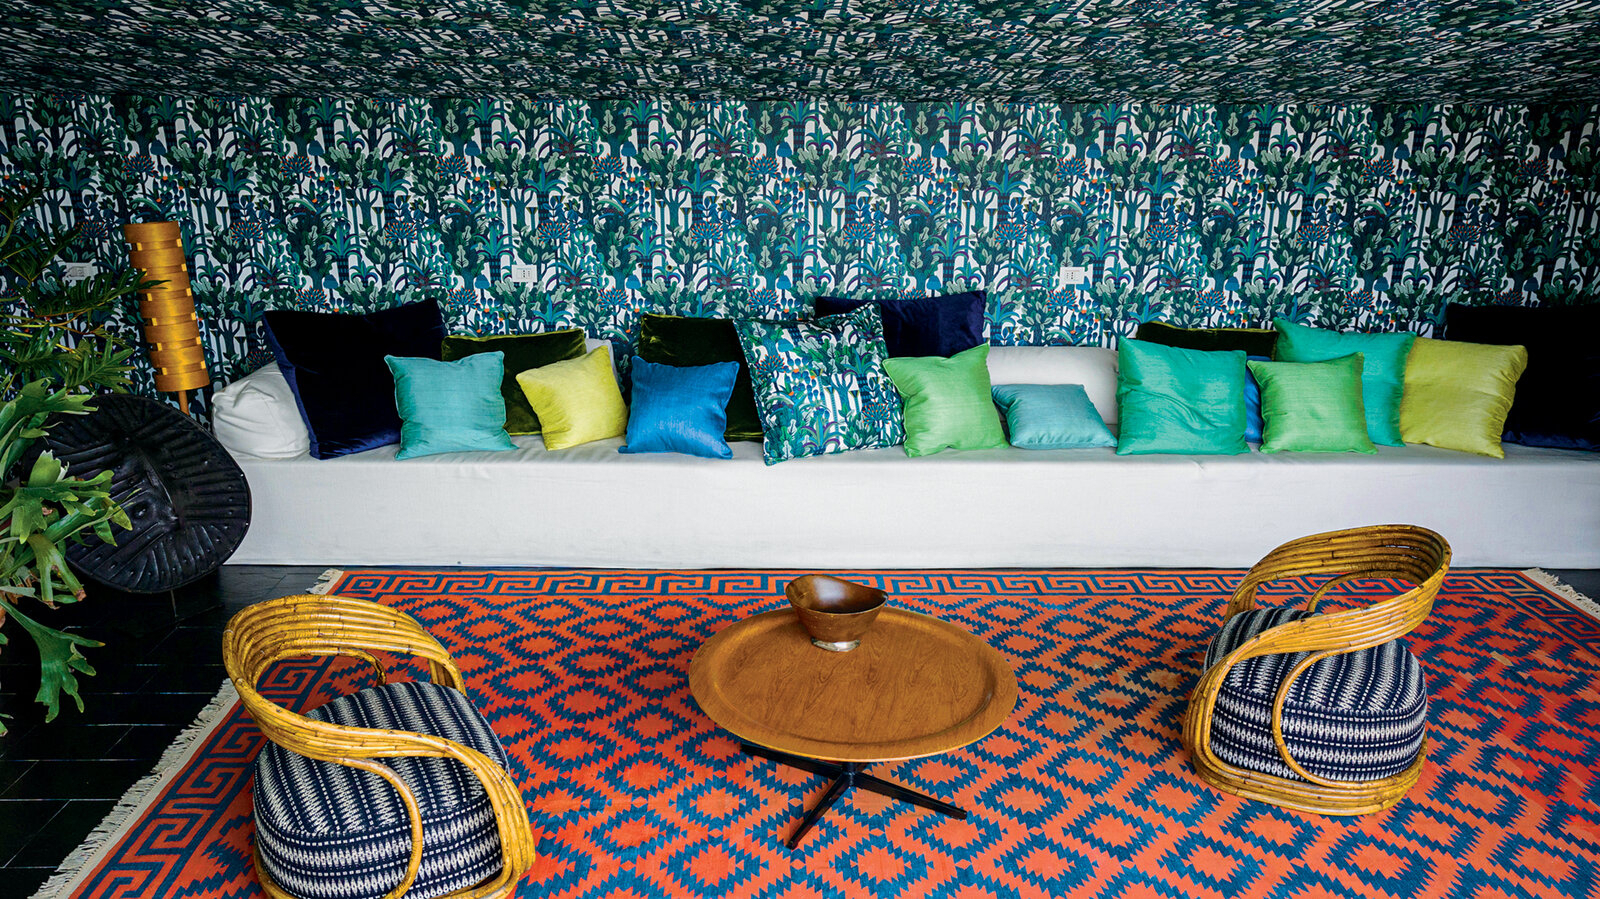 In Italy, A Fabric Designer's Wildly Colorful Home – The New Regarding Newest Blended Fabric Lago Di Como Ii Wall Hangings (View 15 of 20)